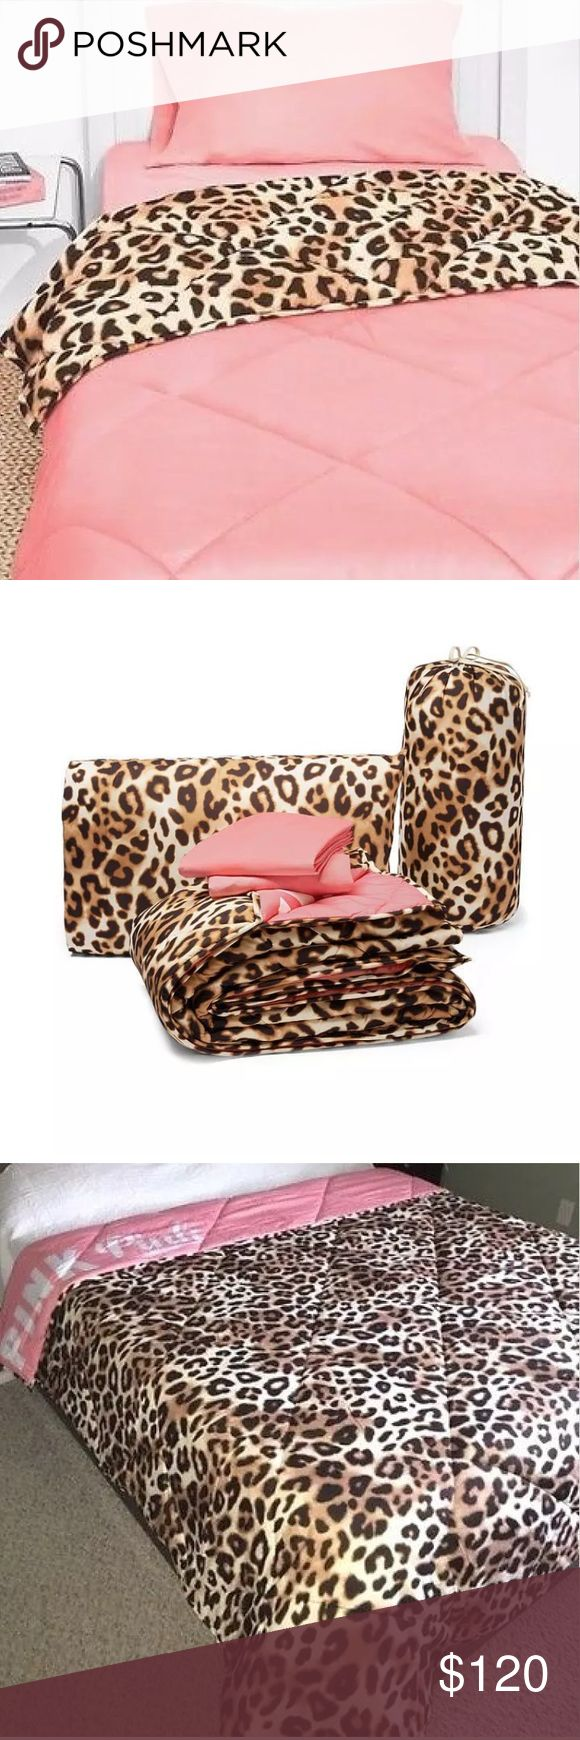 New VS Pink Bed In A Bag Leopard Twin/Twin XL Victoria's Secret Pink Bed in Bag Cheetah leopard print. Comforter is Reversible! Fits Twin and TwinXL (perfect for dorm beds!!!) Brand new. No trades! Feel free to make an offer! PINK Victoria's Secret Other